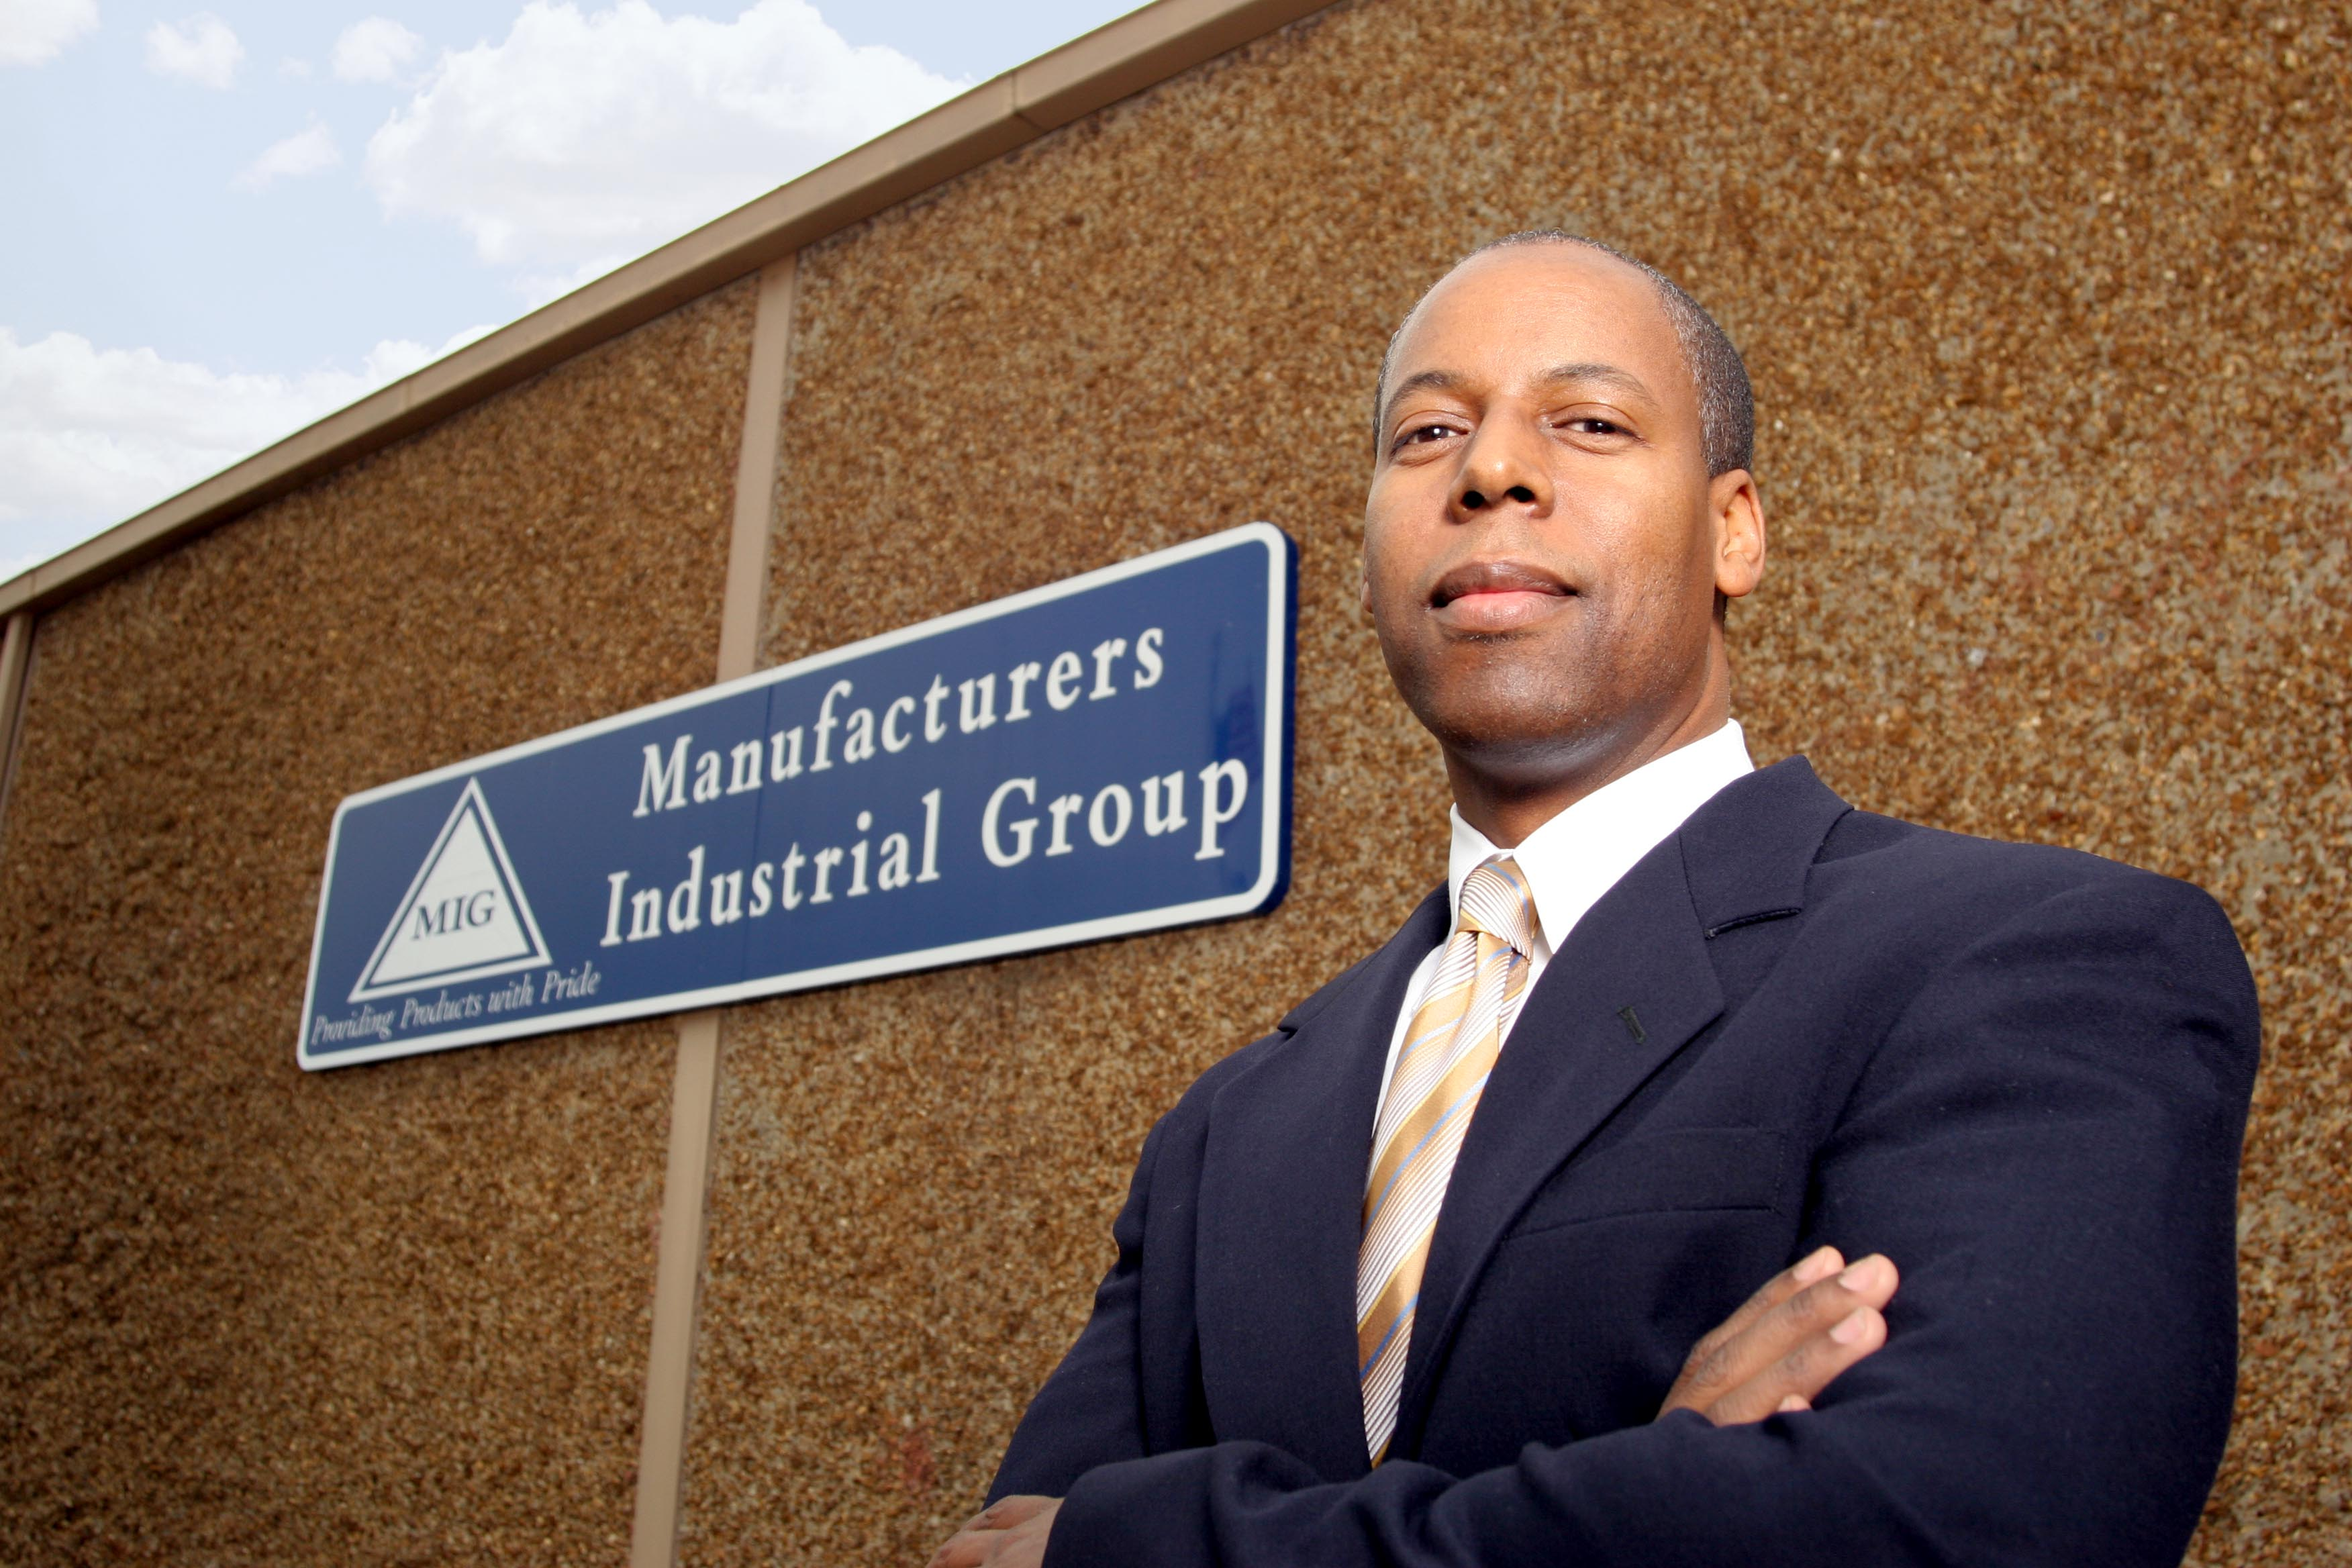 Manufacturers Industrial Group L.L.C. CEO Andre Gist (Image: Courtesy of Subject)